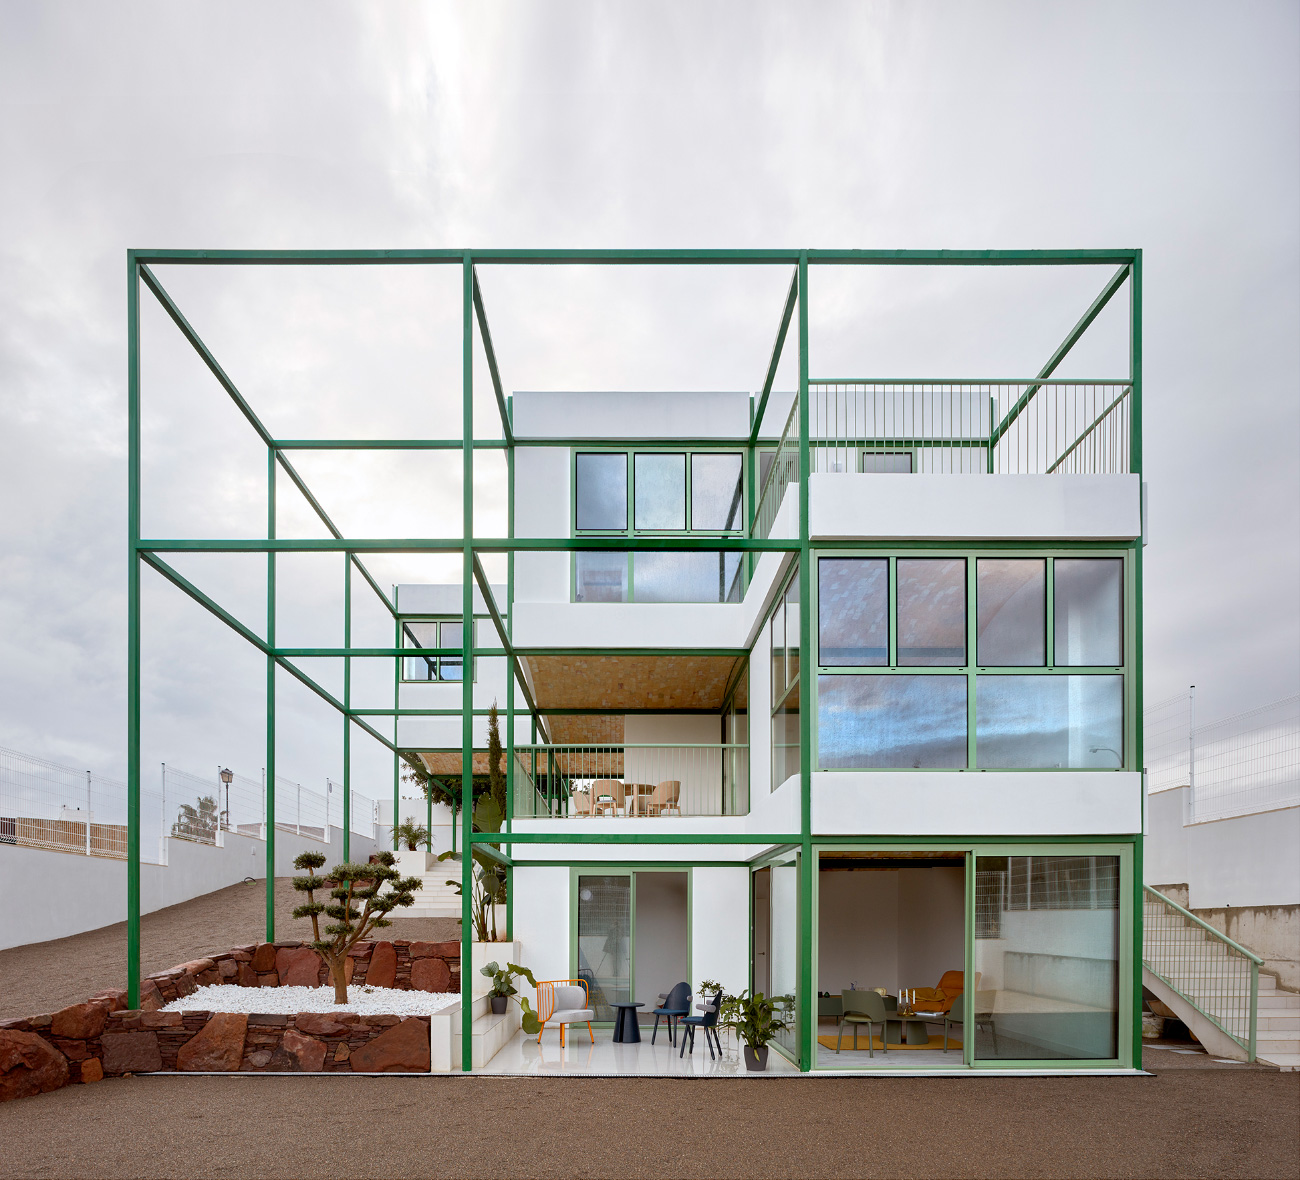 A home with a green metal grid surrounding it, designed by Space Popular